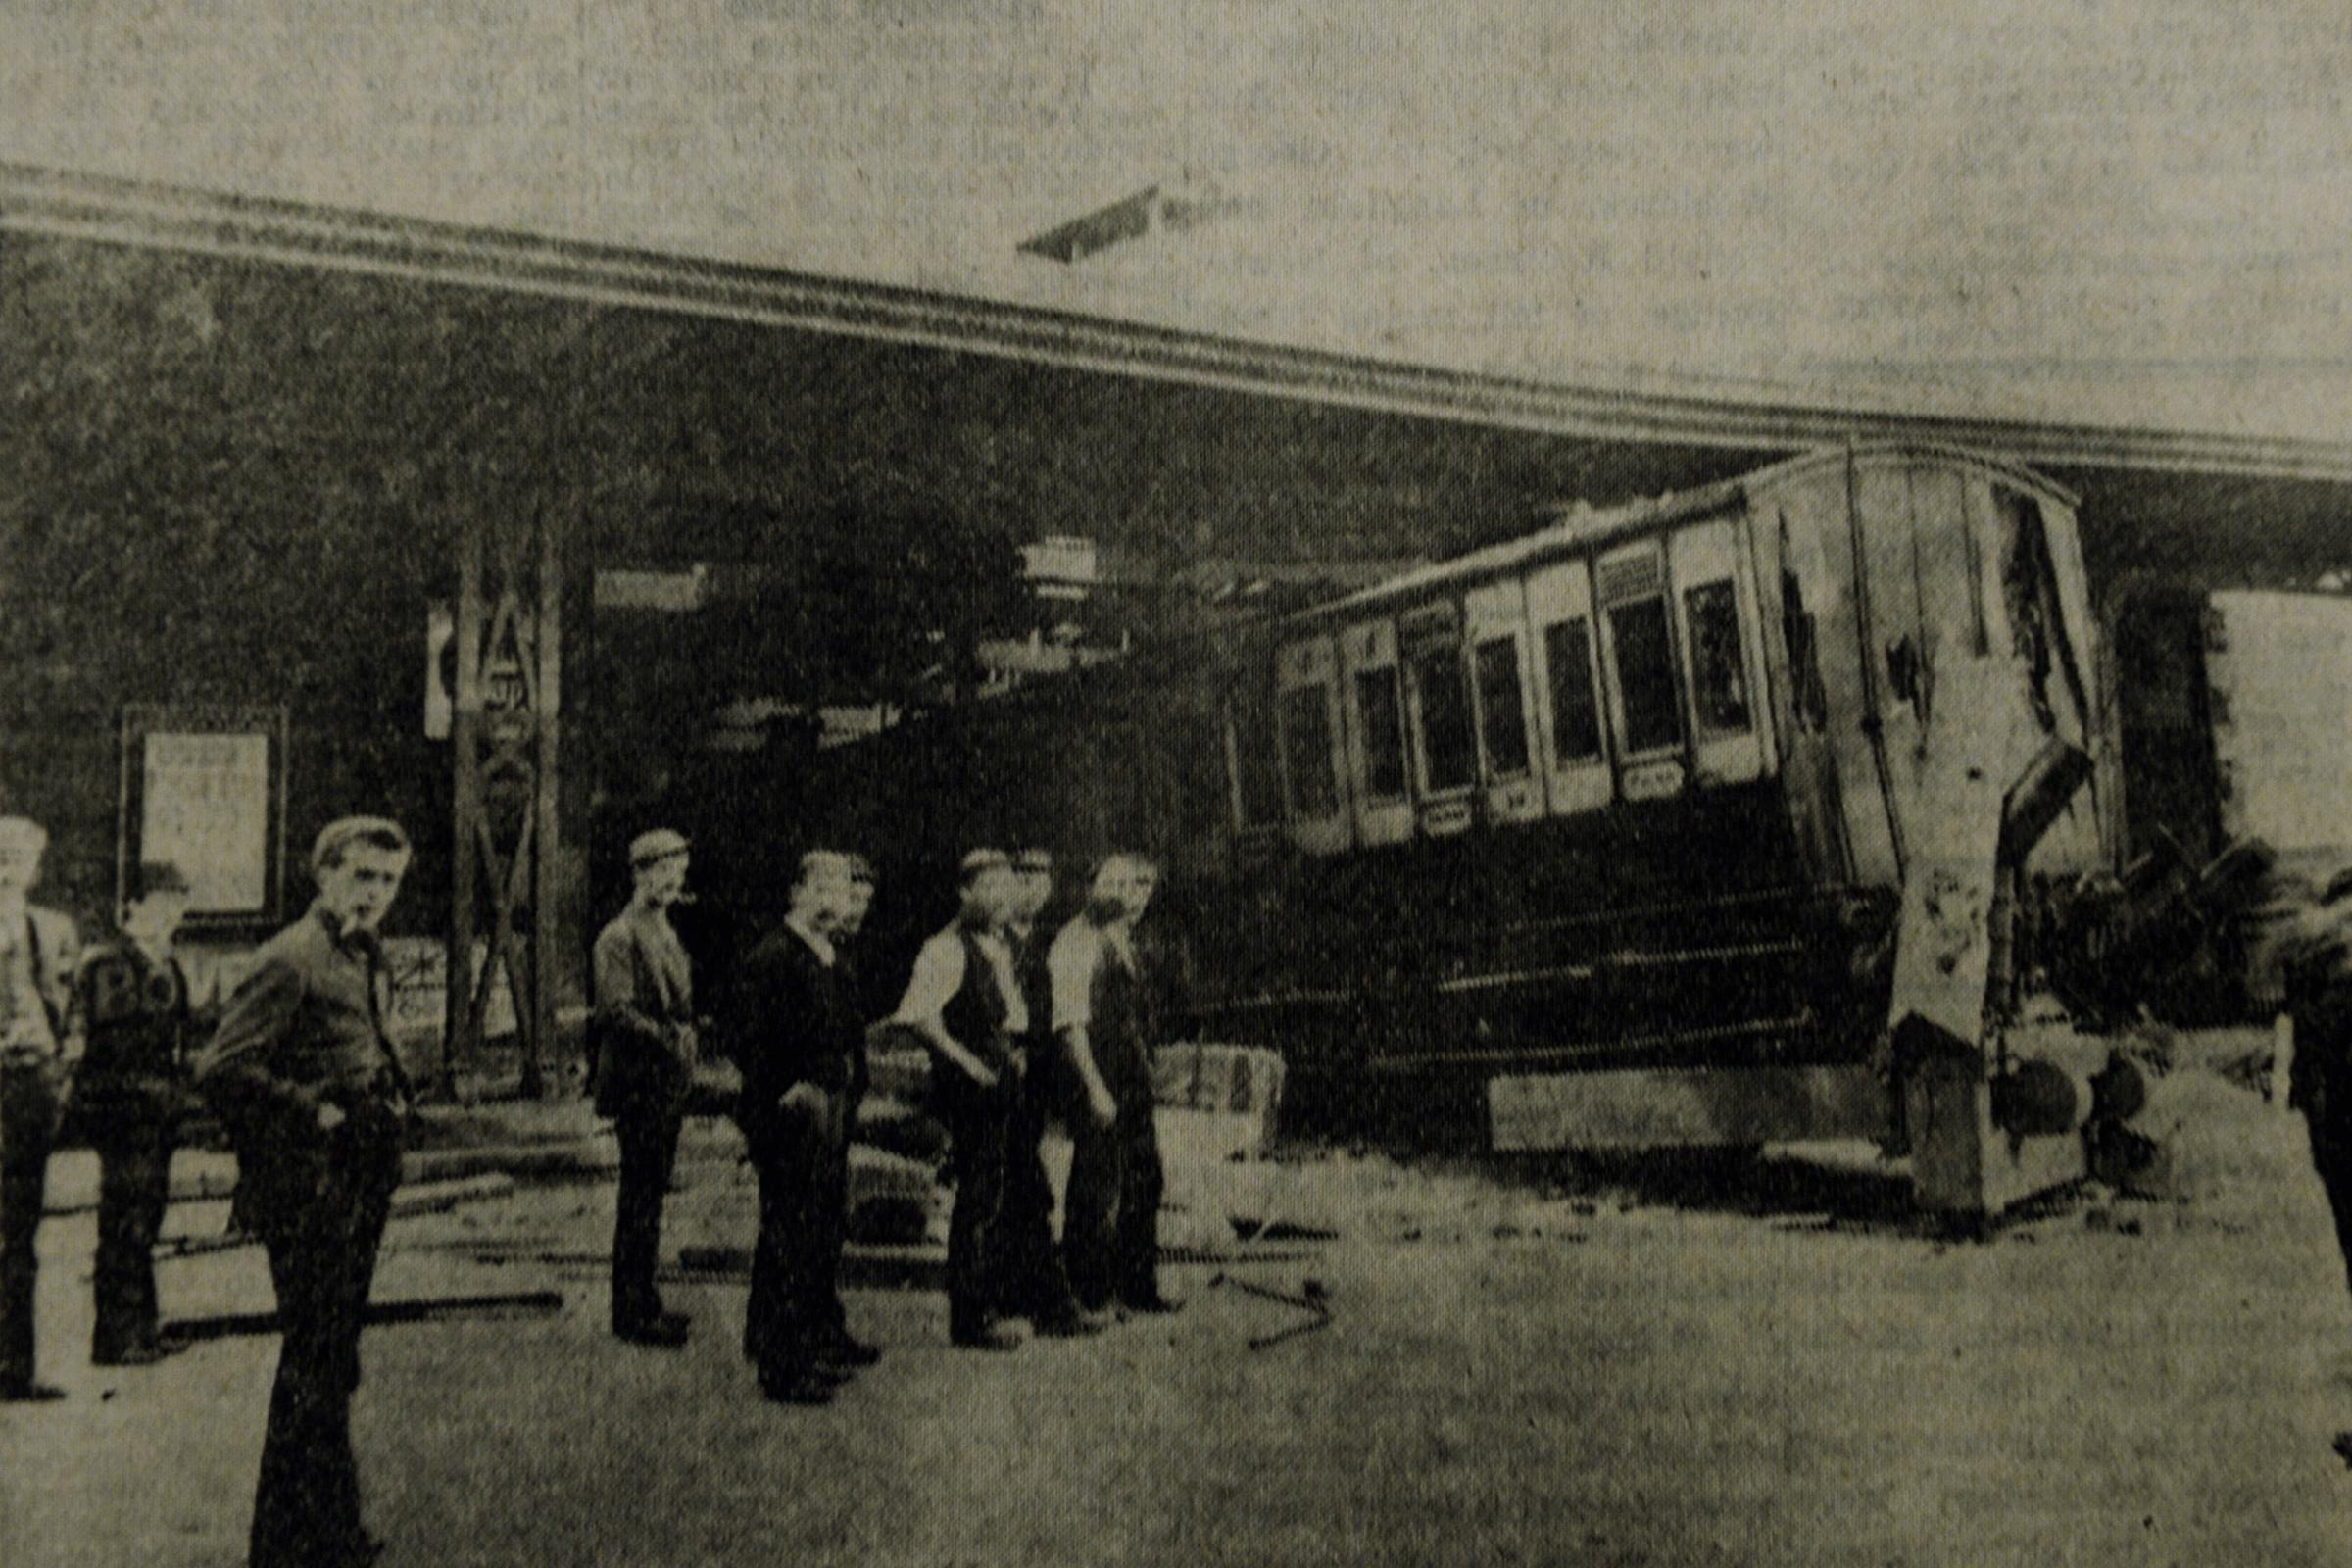 Railway crash at Windermere in 1902